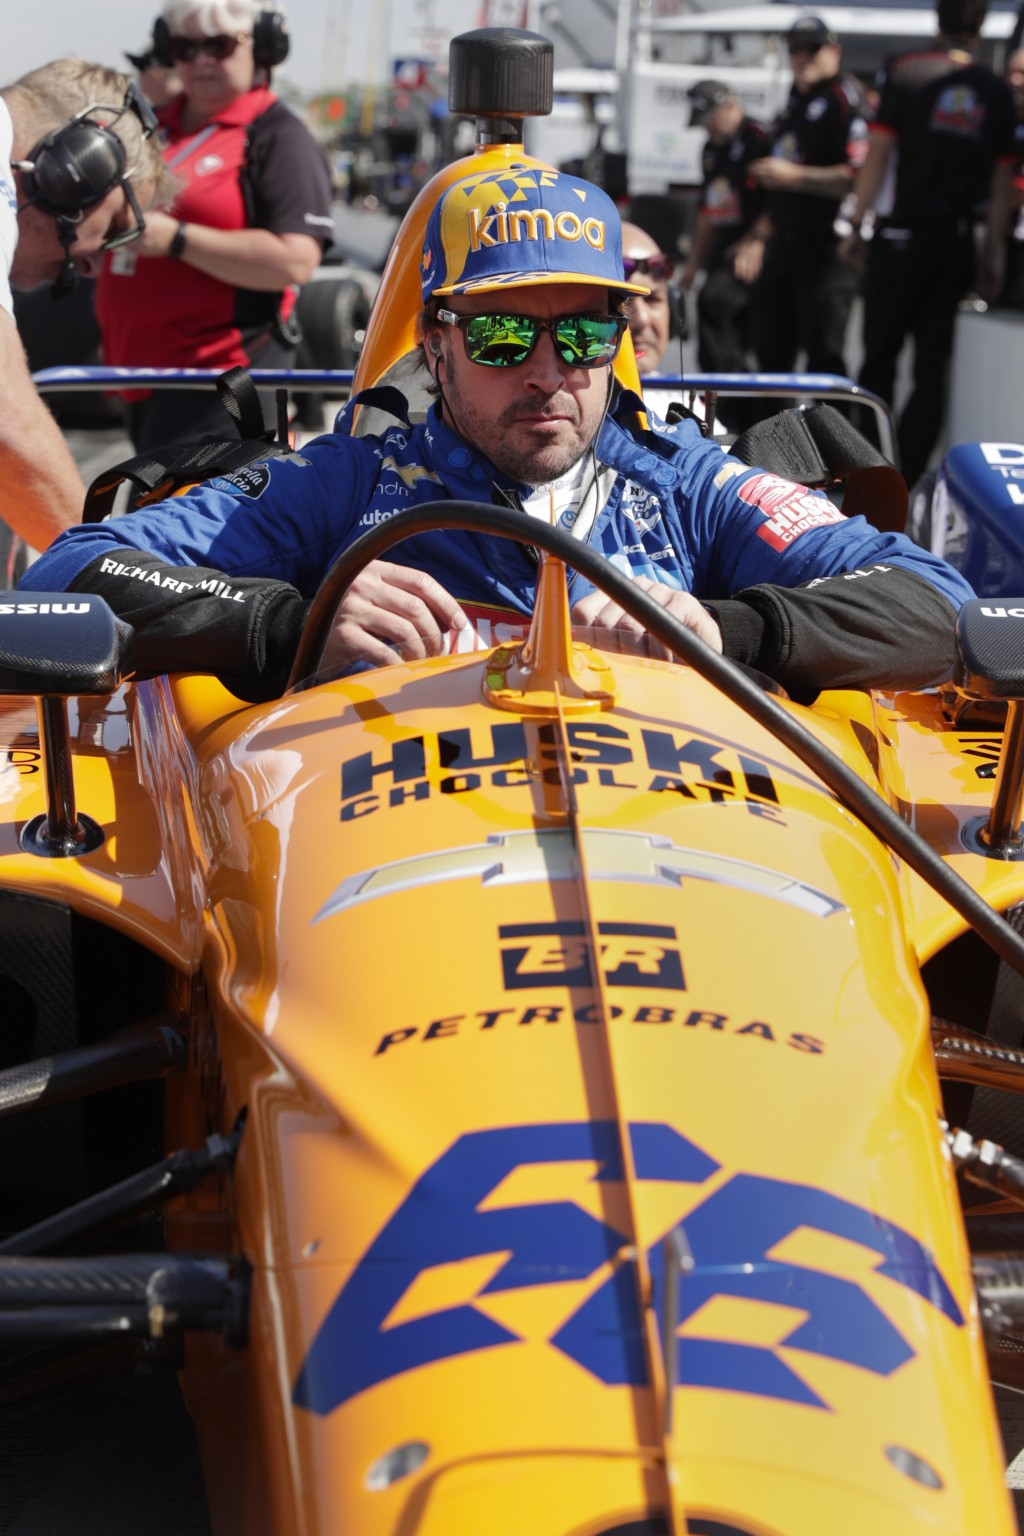 Fernando Alonso, of Spain, climbs into his car during practice for the Indianapolis 500 IndyCar auto race at Indianapolis Motor Speedway, Wednesday, M...